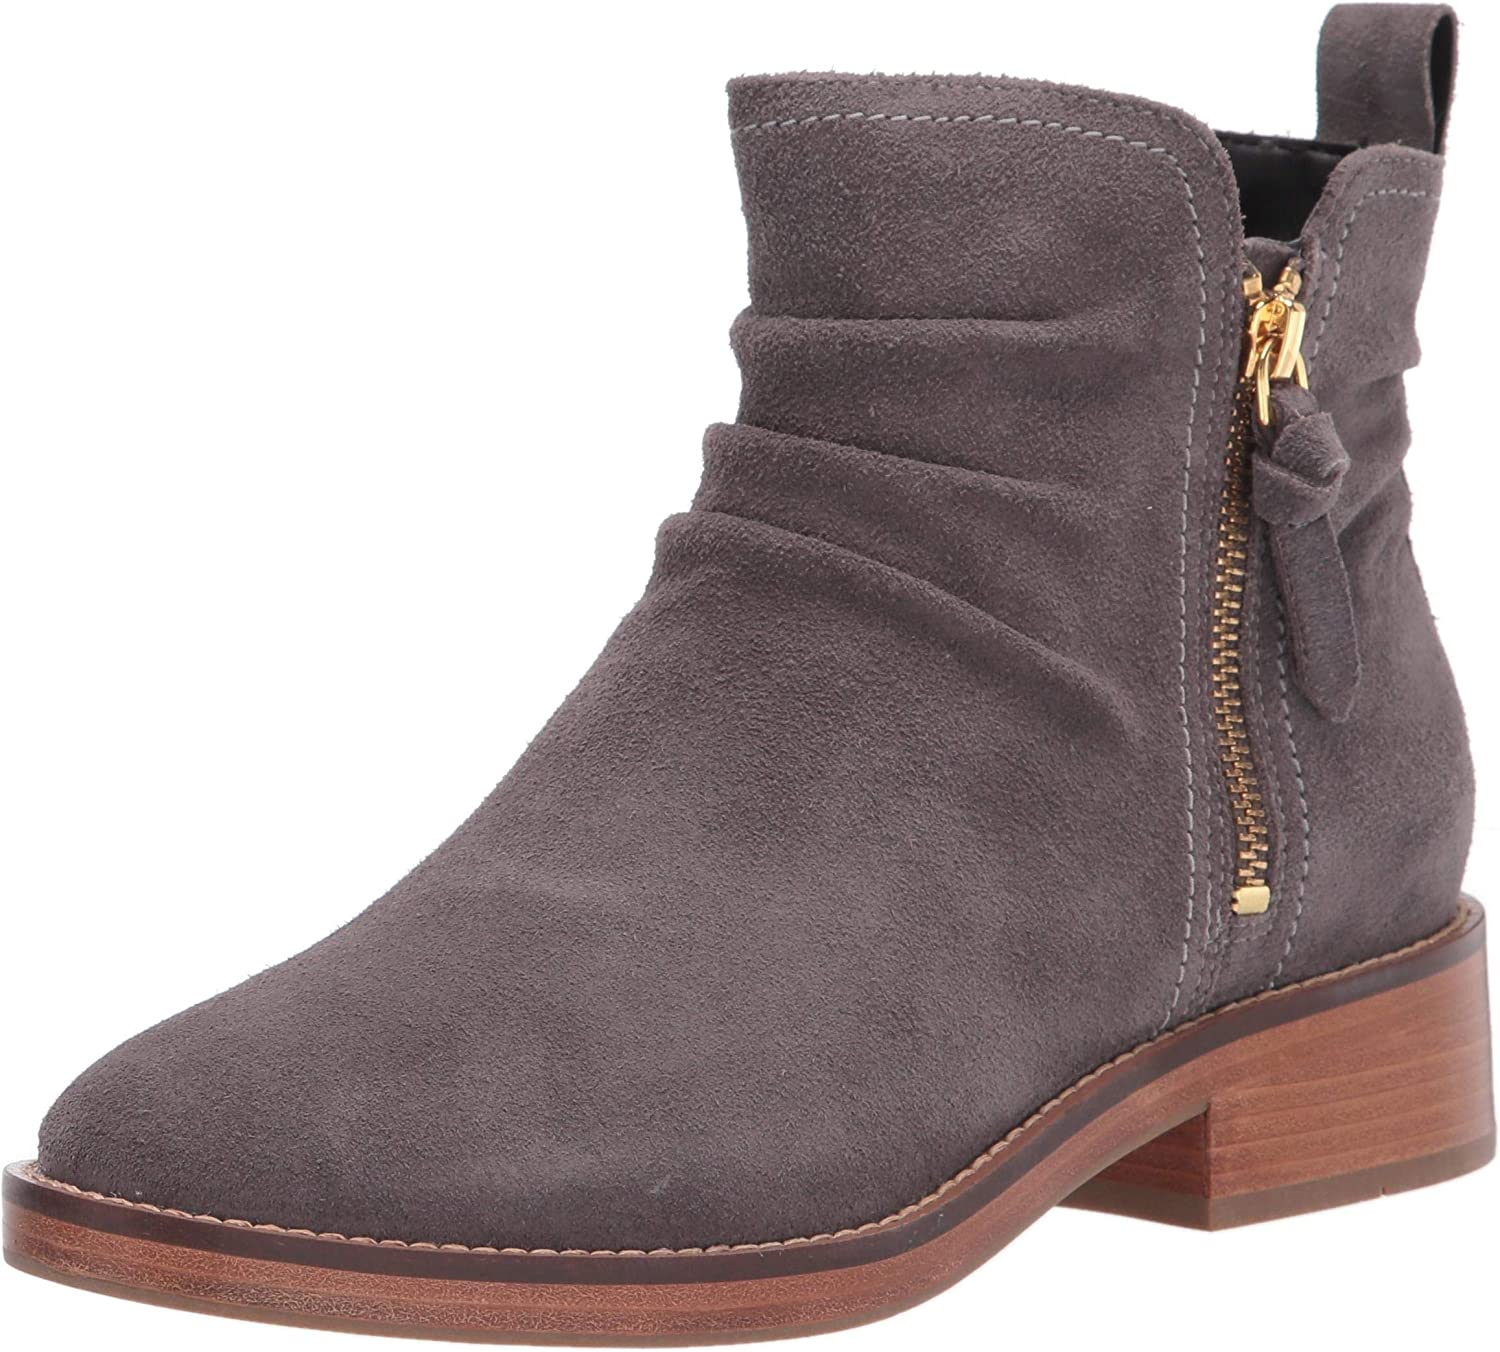 Cole Haan Women's Harrington Grand Bootie Ankle Ranking Sale special price TOP5 Boot Slouch